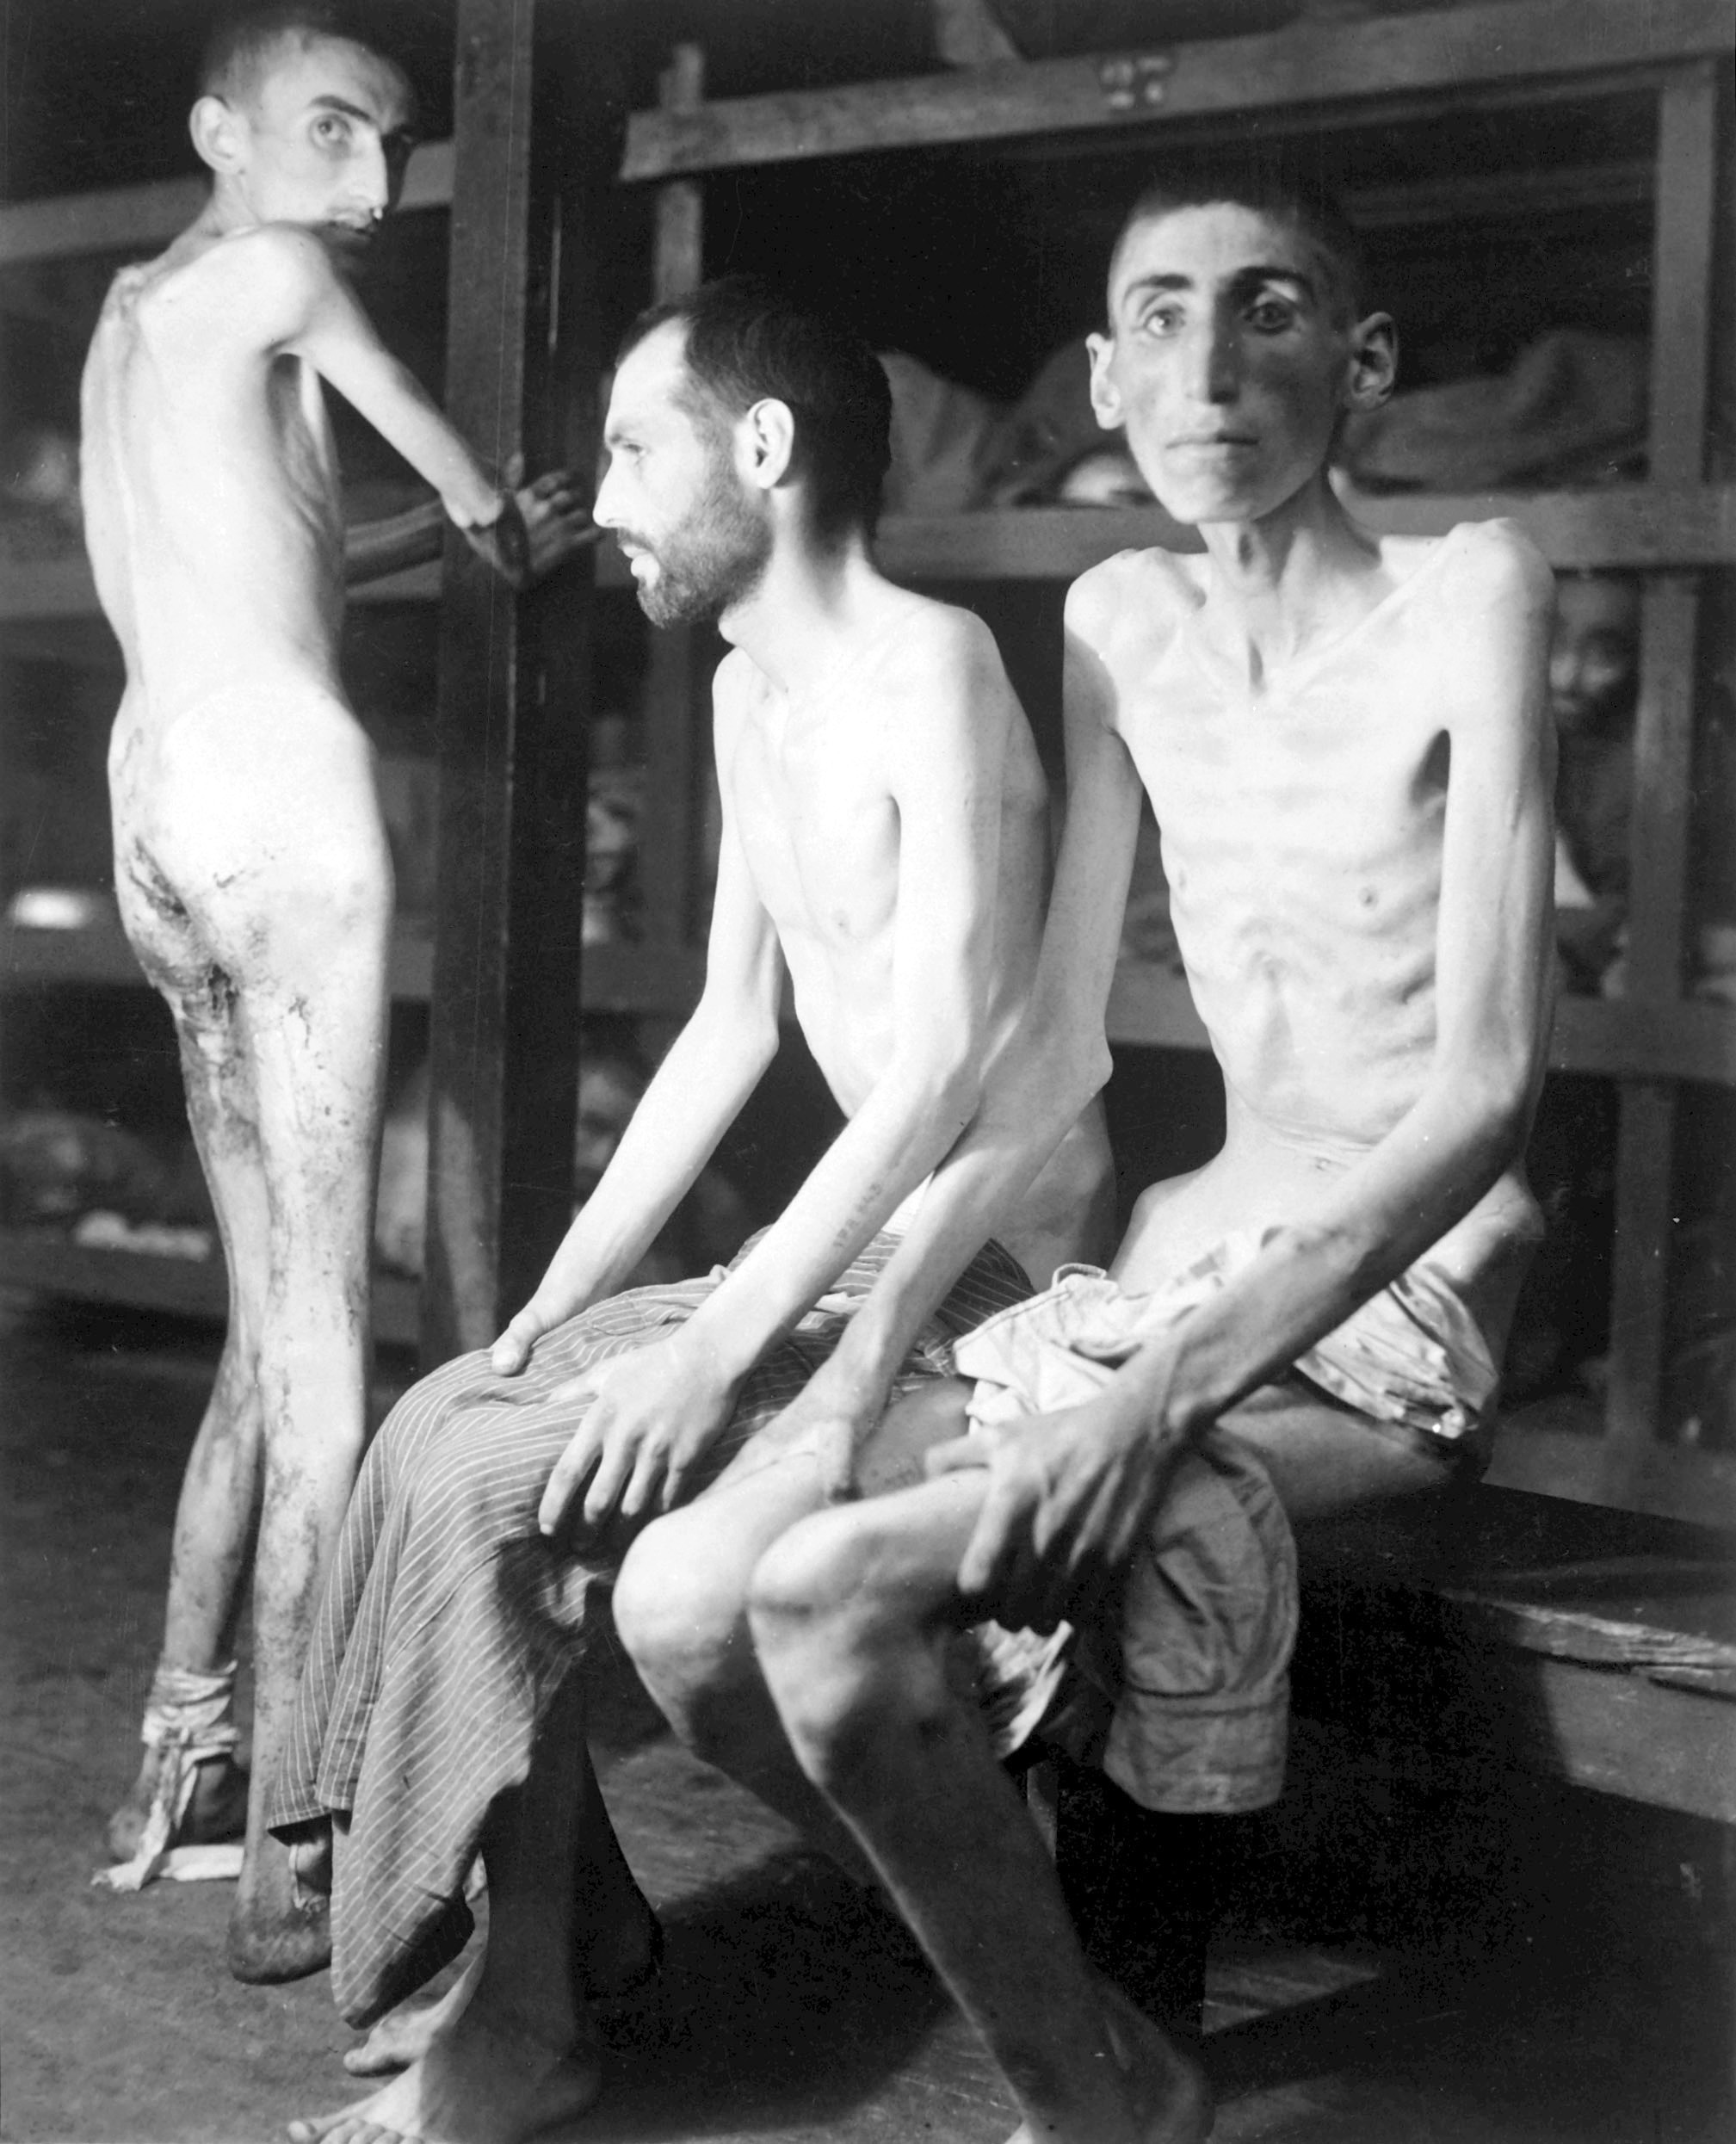 http://upload.wikimedia.org/wikipedia/commons/b/bc/Slave_laborers_at_Buchenwald.jpg